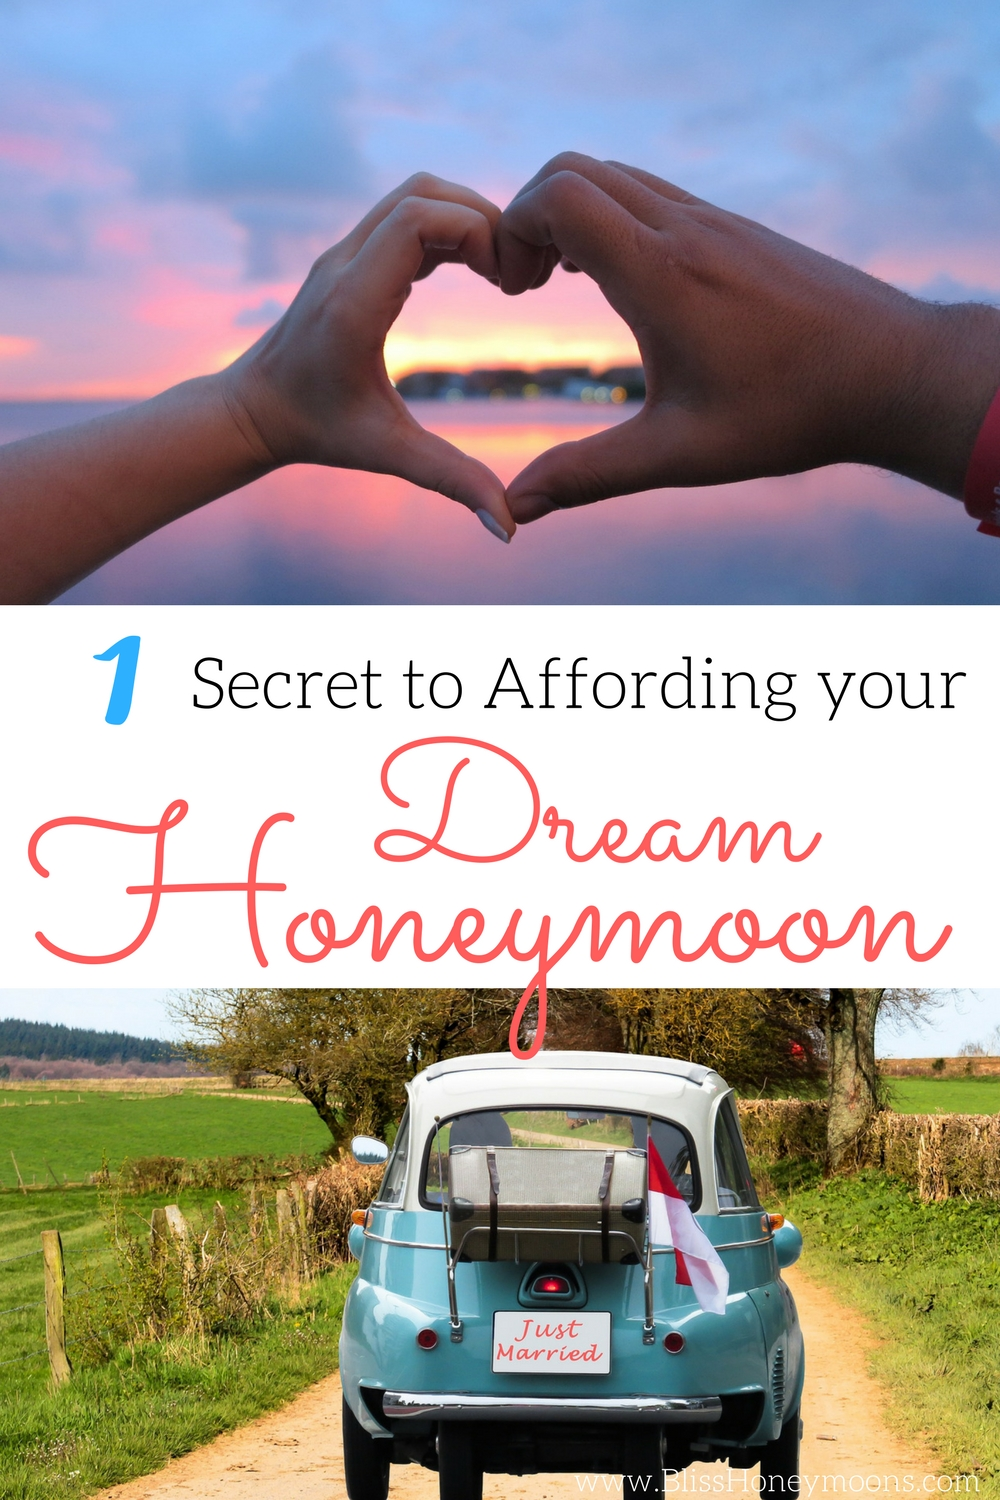 How to pay for honeymoon, affordable honeymoon, plan and pay for honeymoon, secret to pay for honeymoon, honeymoon registry, best honeymoon registry, top honeymoon registry, afford dream honeymoon